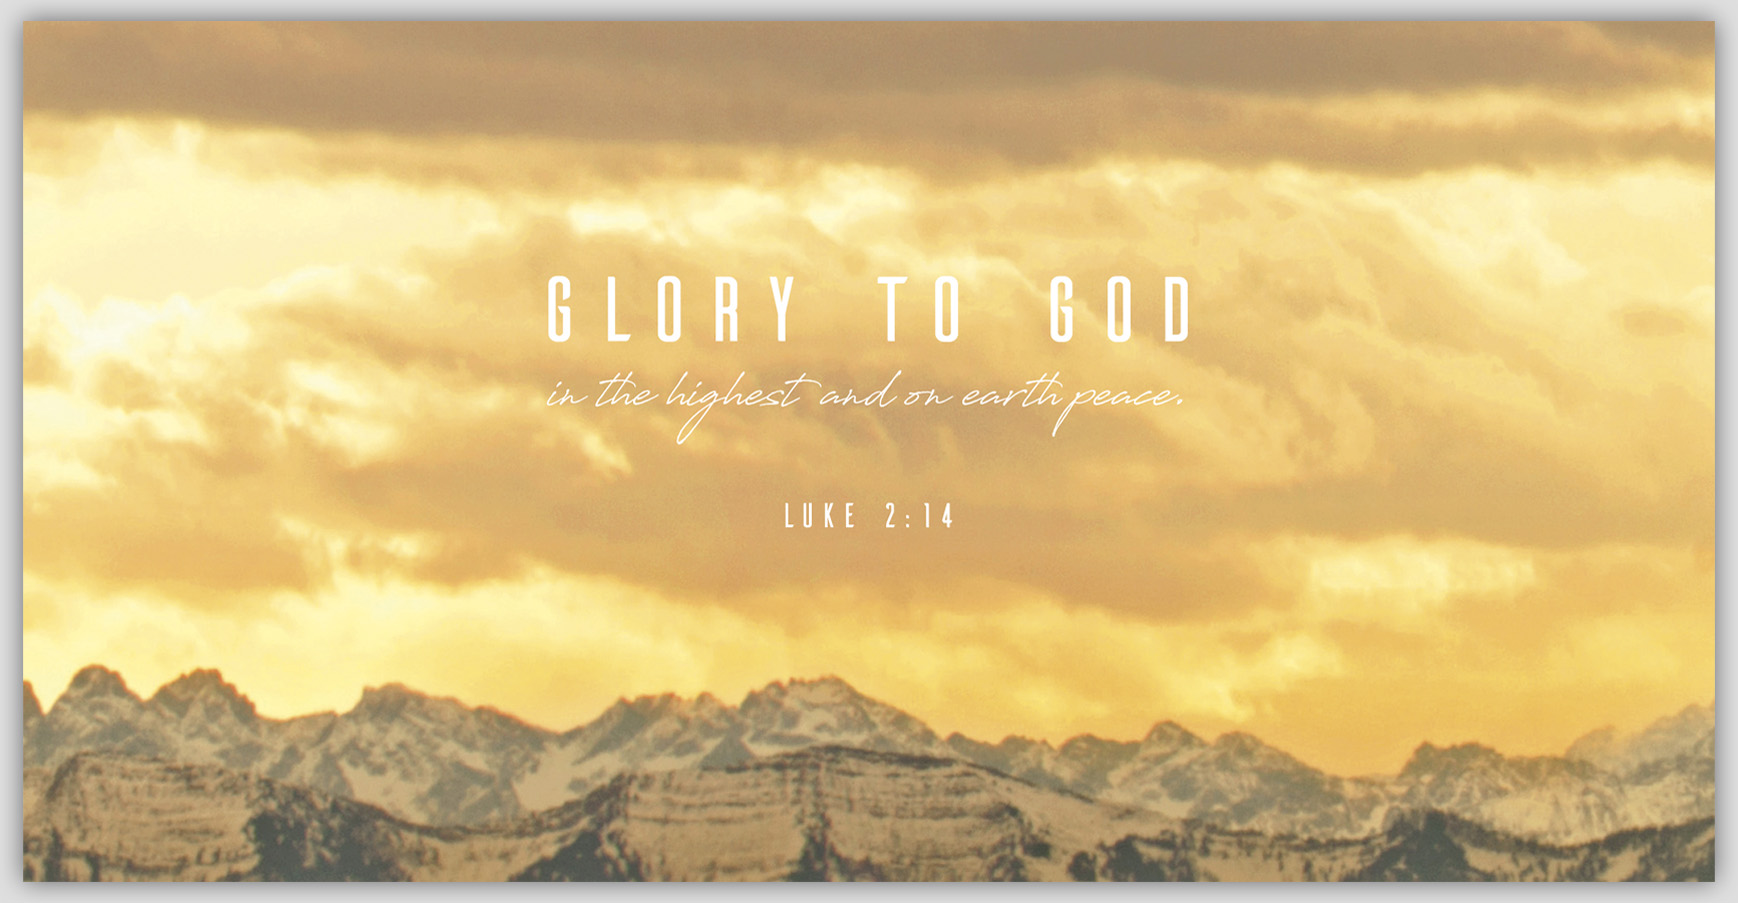 Glory to God in the highest and on earth peace.